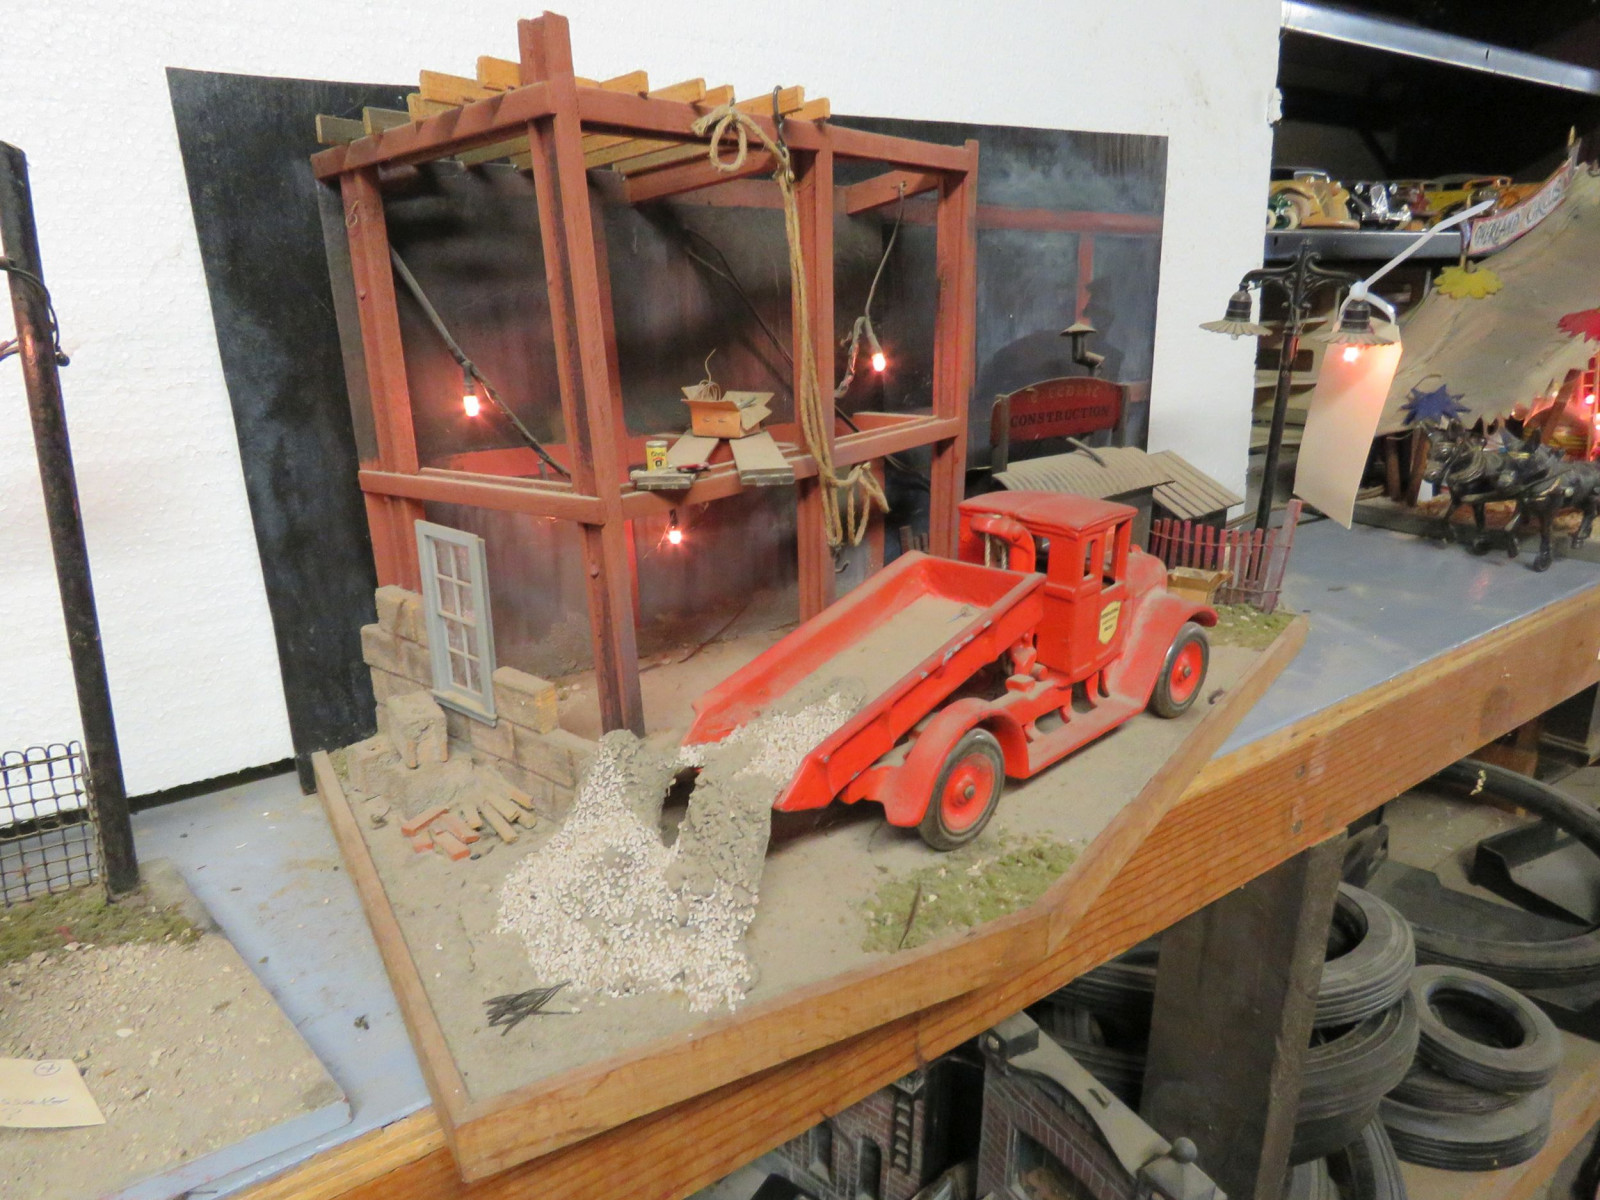 Construction Site Diorama with Vintage Cast Iron Arcade IH Truck - Image 3